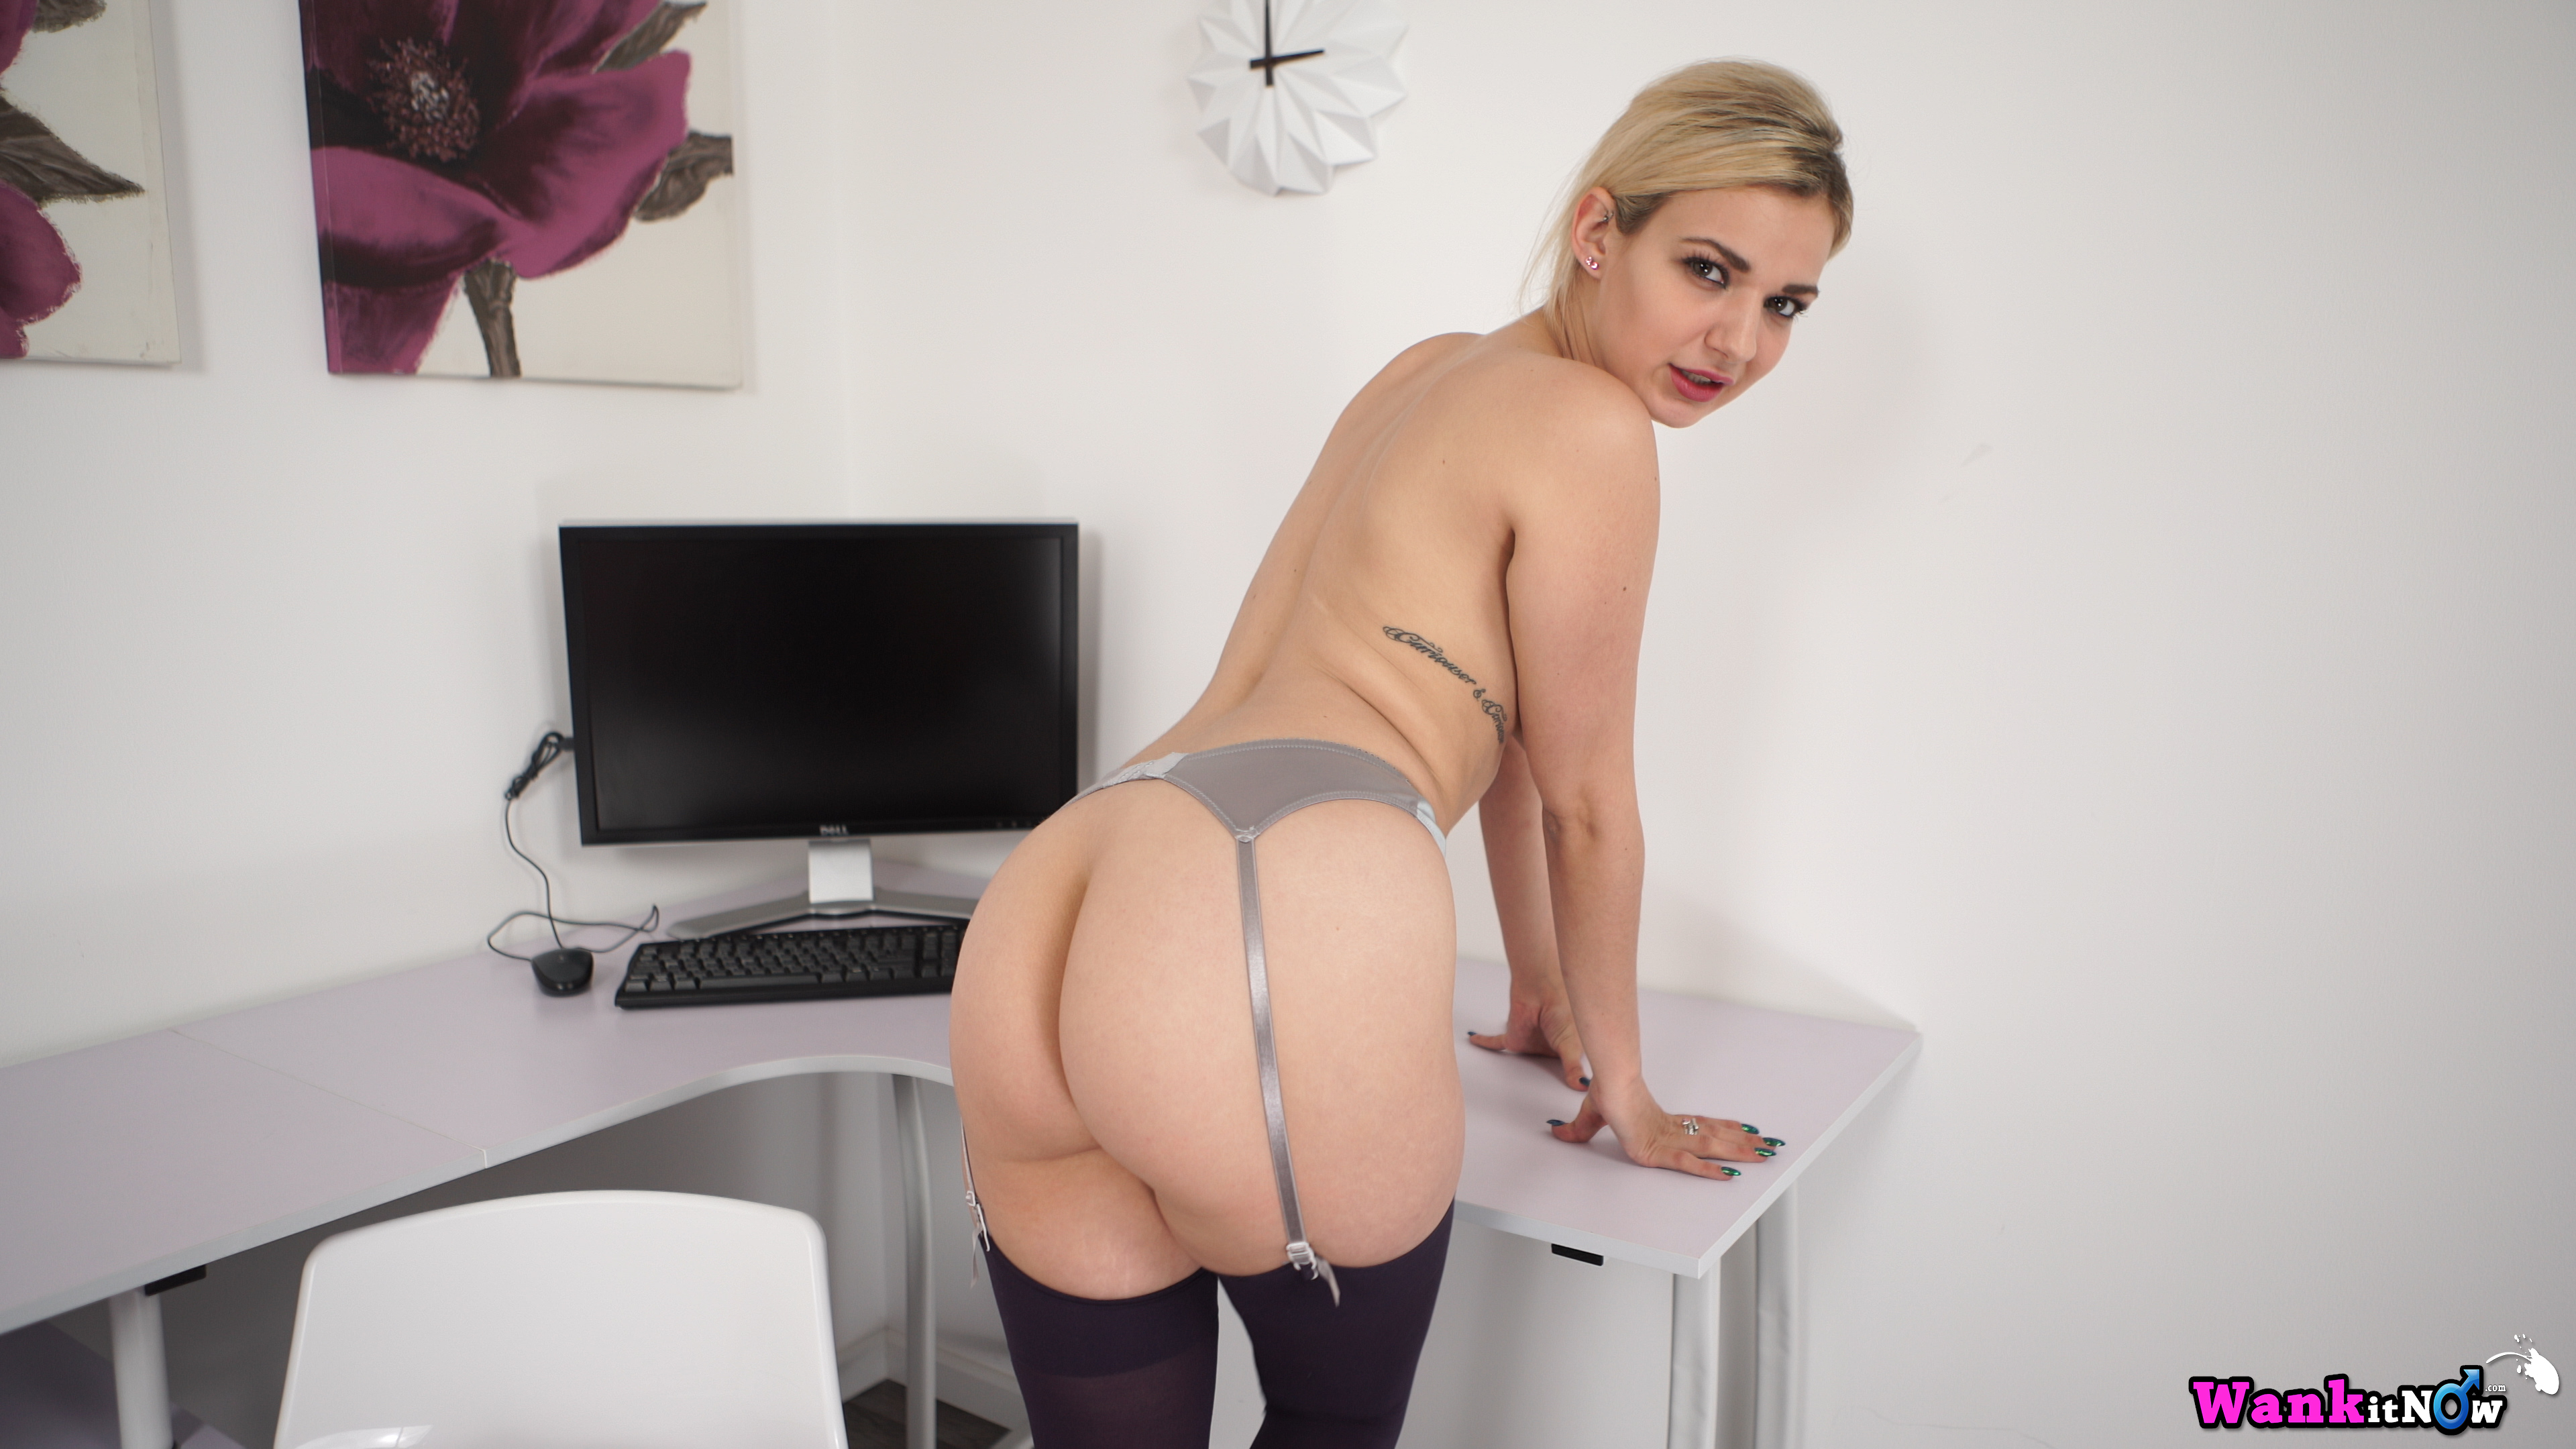 Hot blonde ashley rider gets her tight cunt destroyed hard - 2 part 10